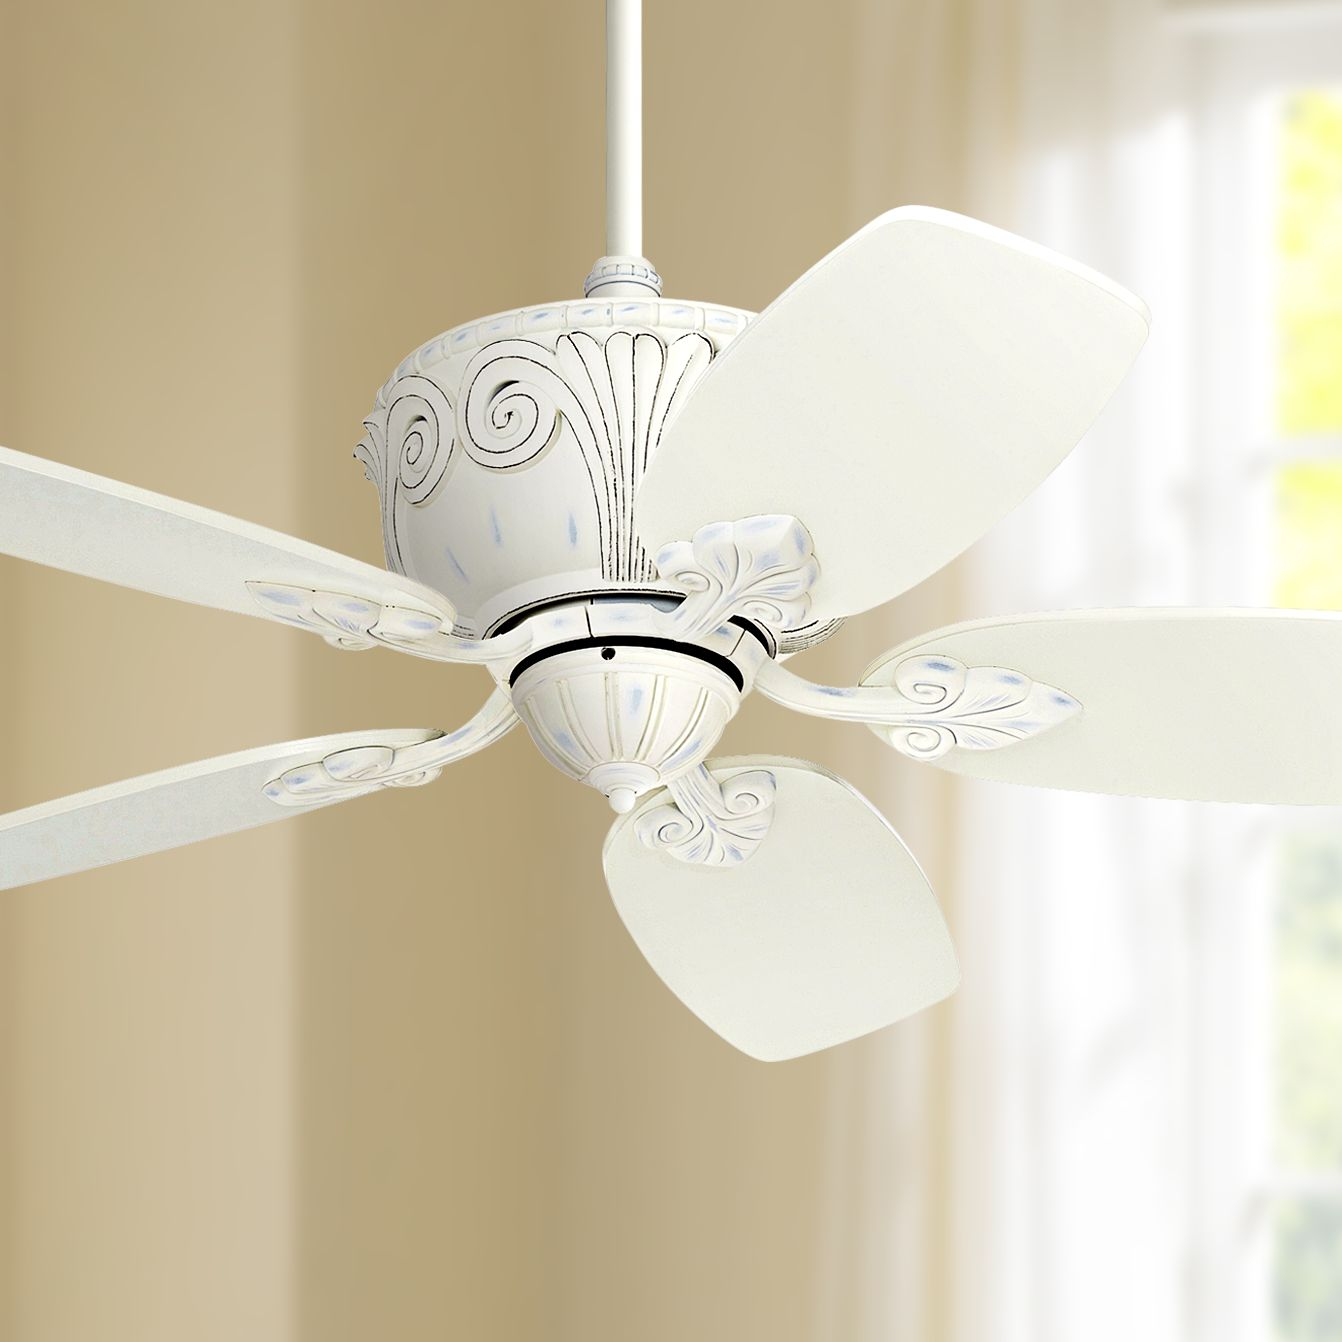 44 Casa Vieja Shabby Chic Ceiling Fan Antique Rubbed White For Living Room Kitchen Bedroom Family Dining Walmart Com Walmart Com